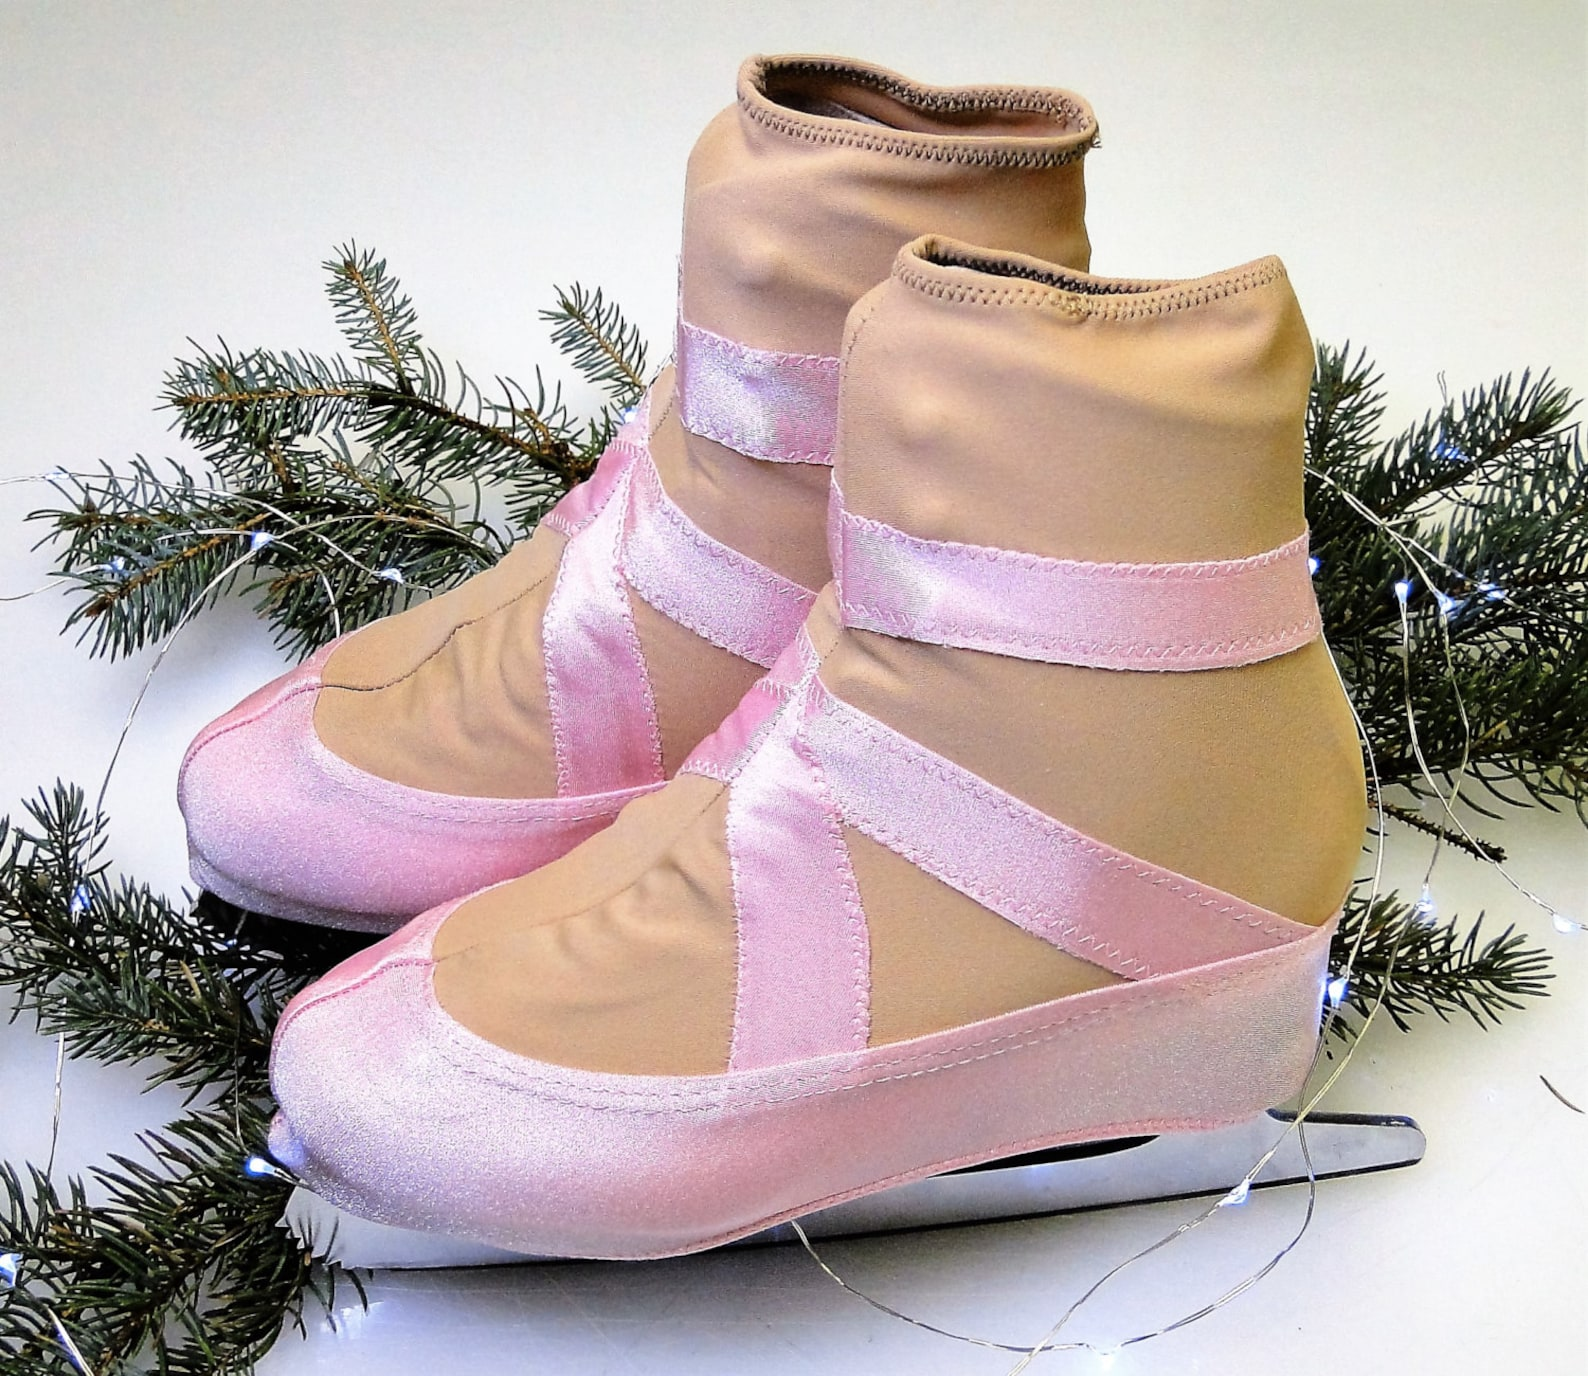 ballet slipper skate boot covers / figure skating / ice skating